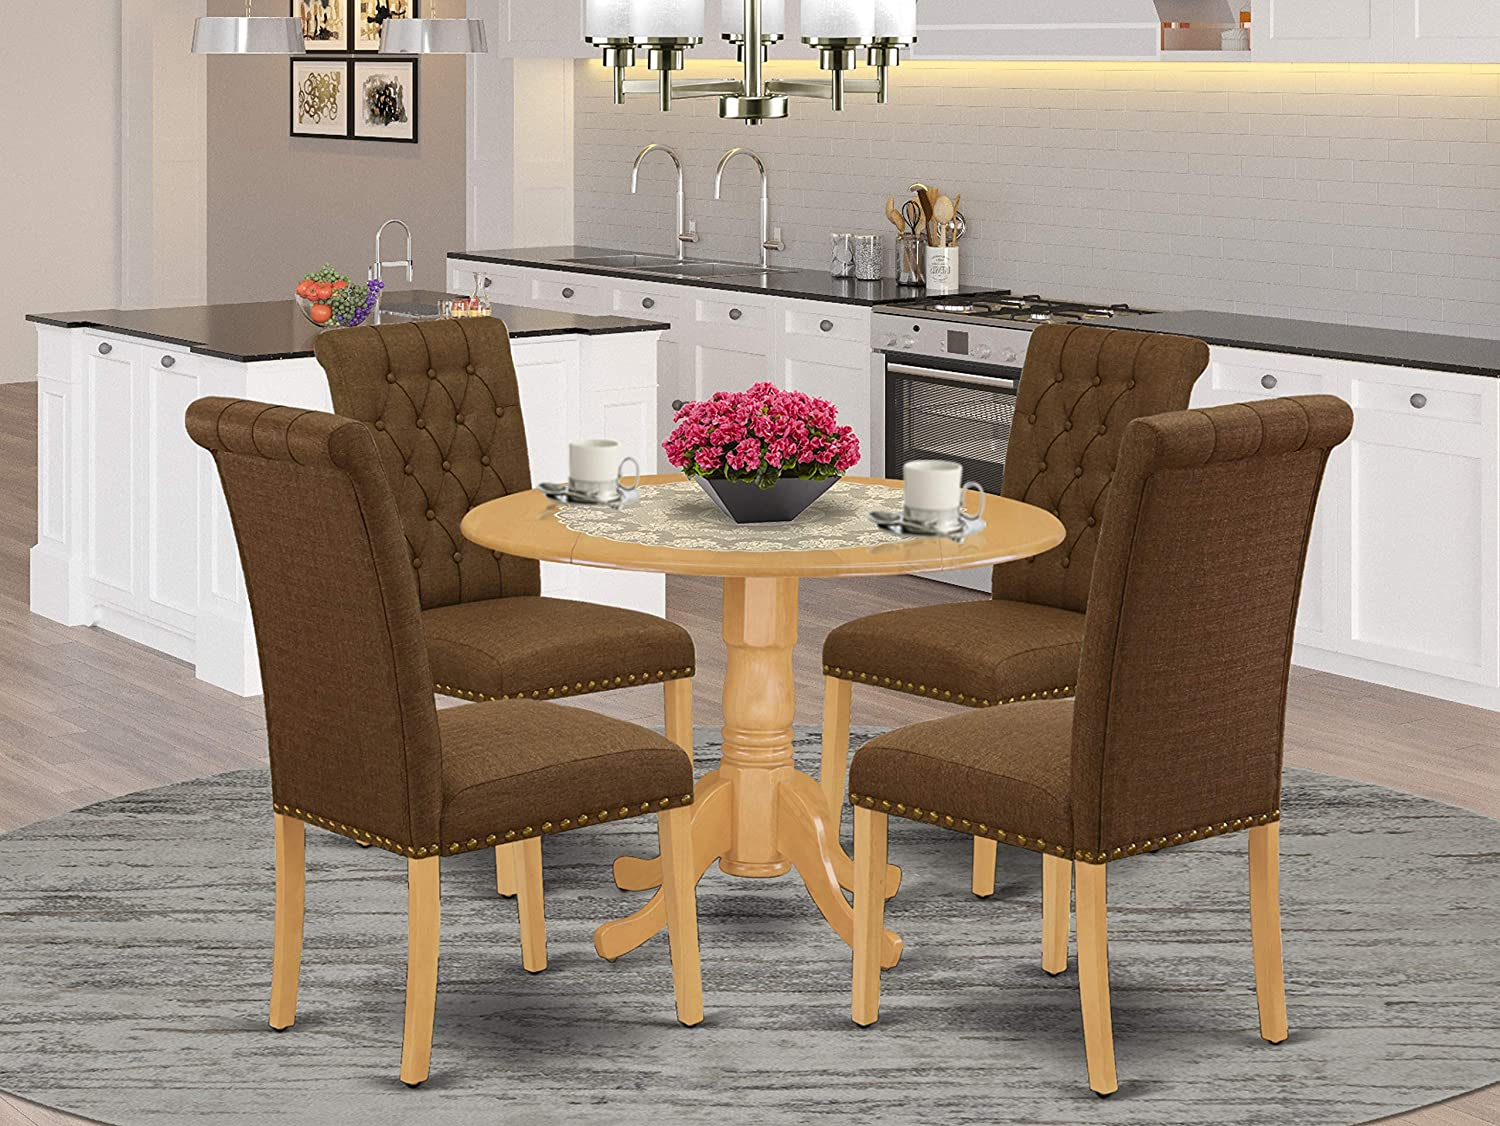 East West Furniture 5Pc Dining Set Includes a Round Dinette Table with Drop Leaves and Four Parson Chairs with Dark Coffee Fabric, Oak Finish